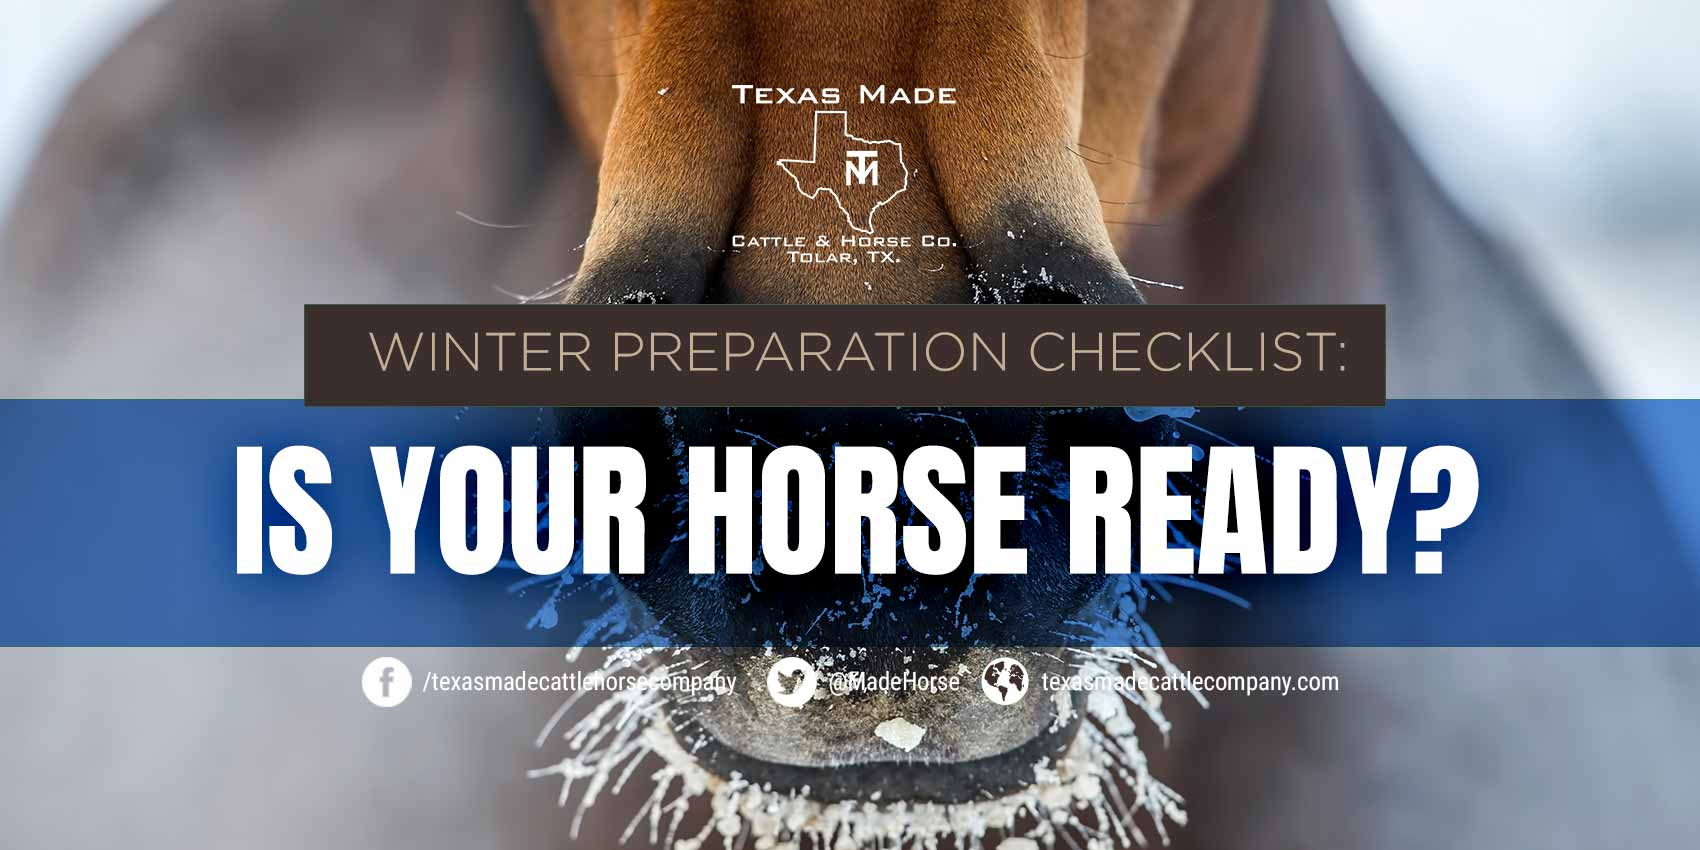 Winter Preparation Checklist: Is Your Horse Ready?